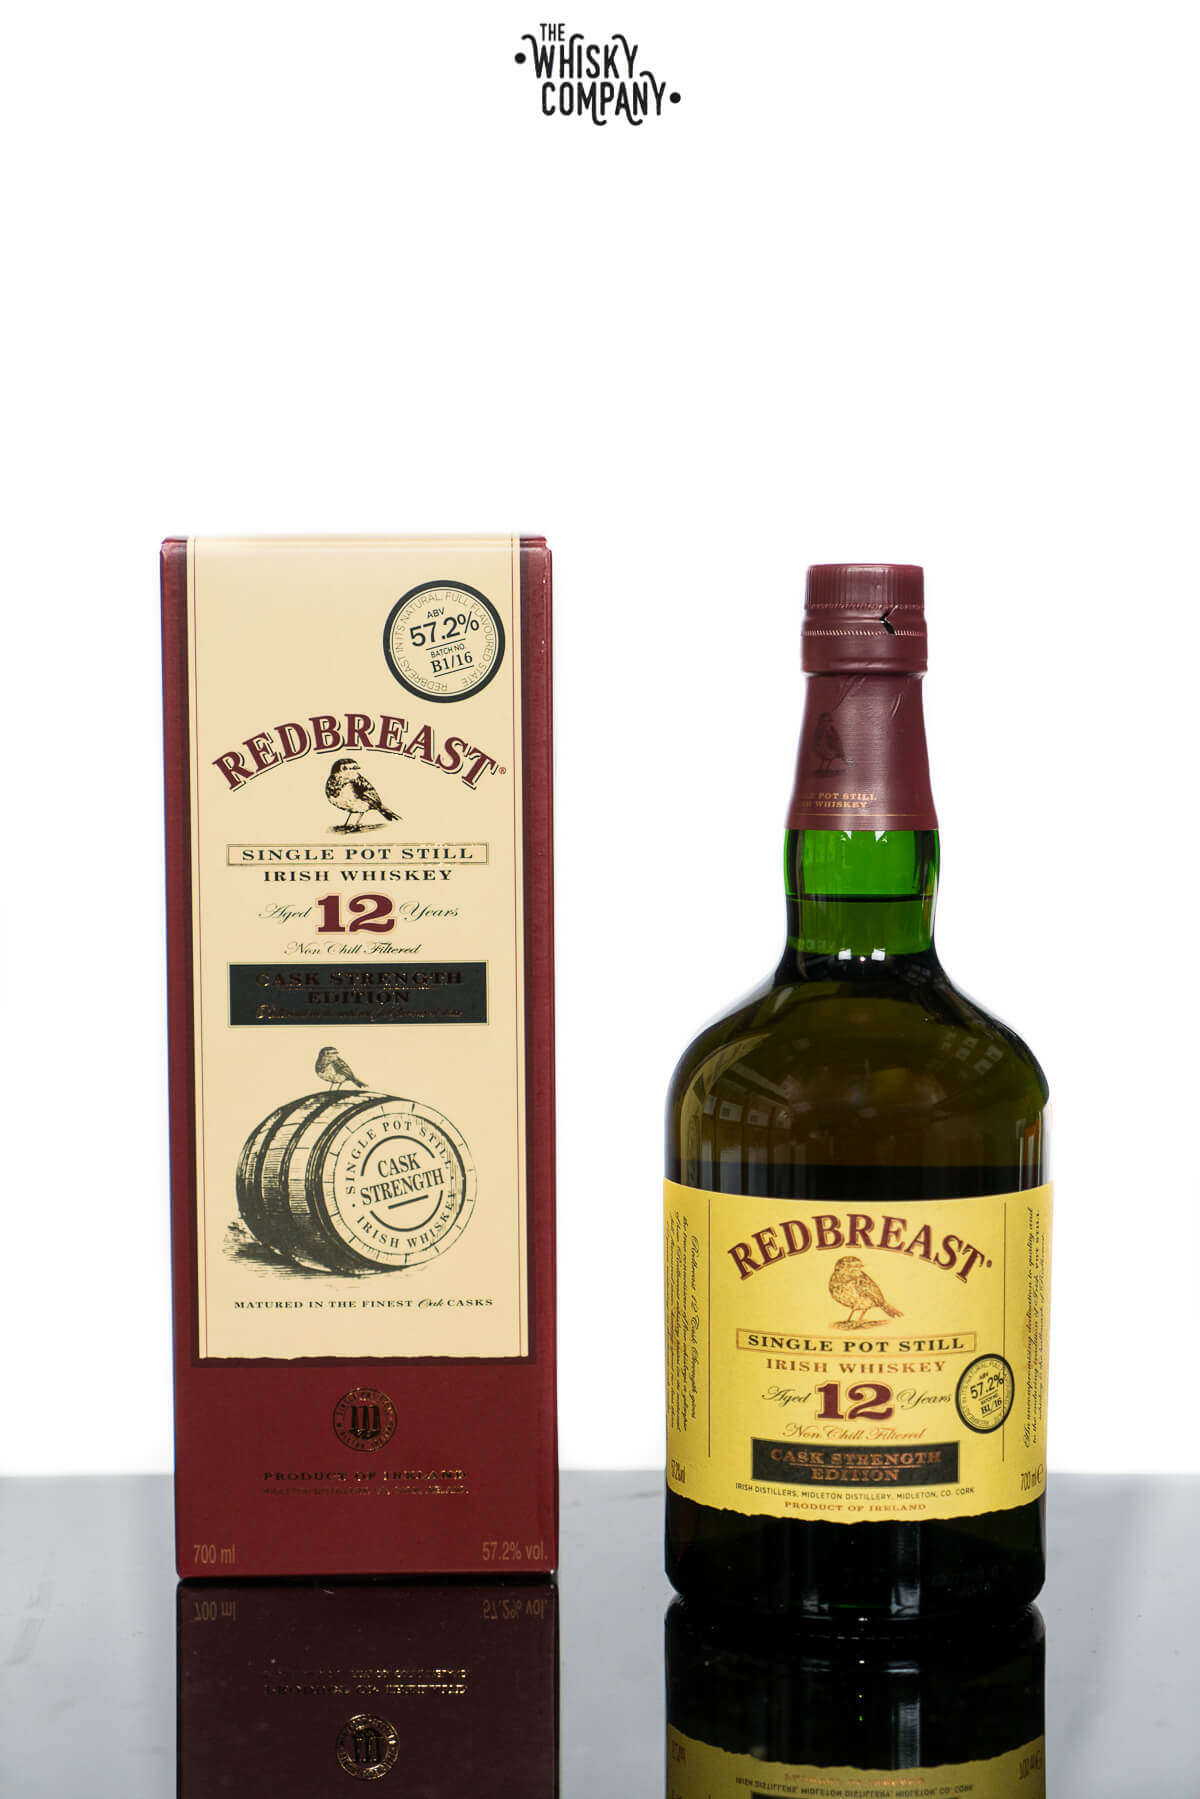 Redbreast Aged 12 Years Cask Strength Edition Irish Single Pot Still Whiskey (700ml)